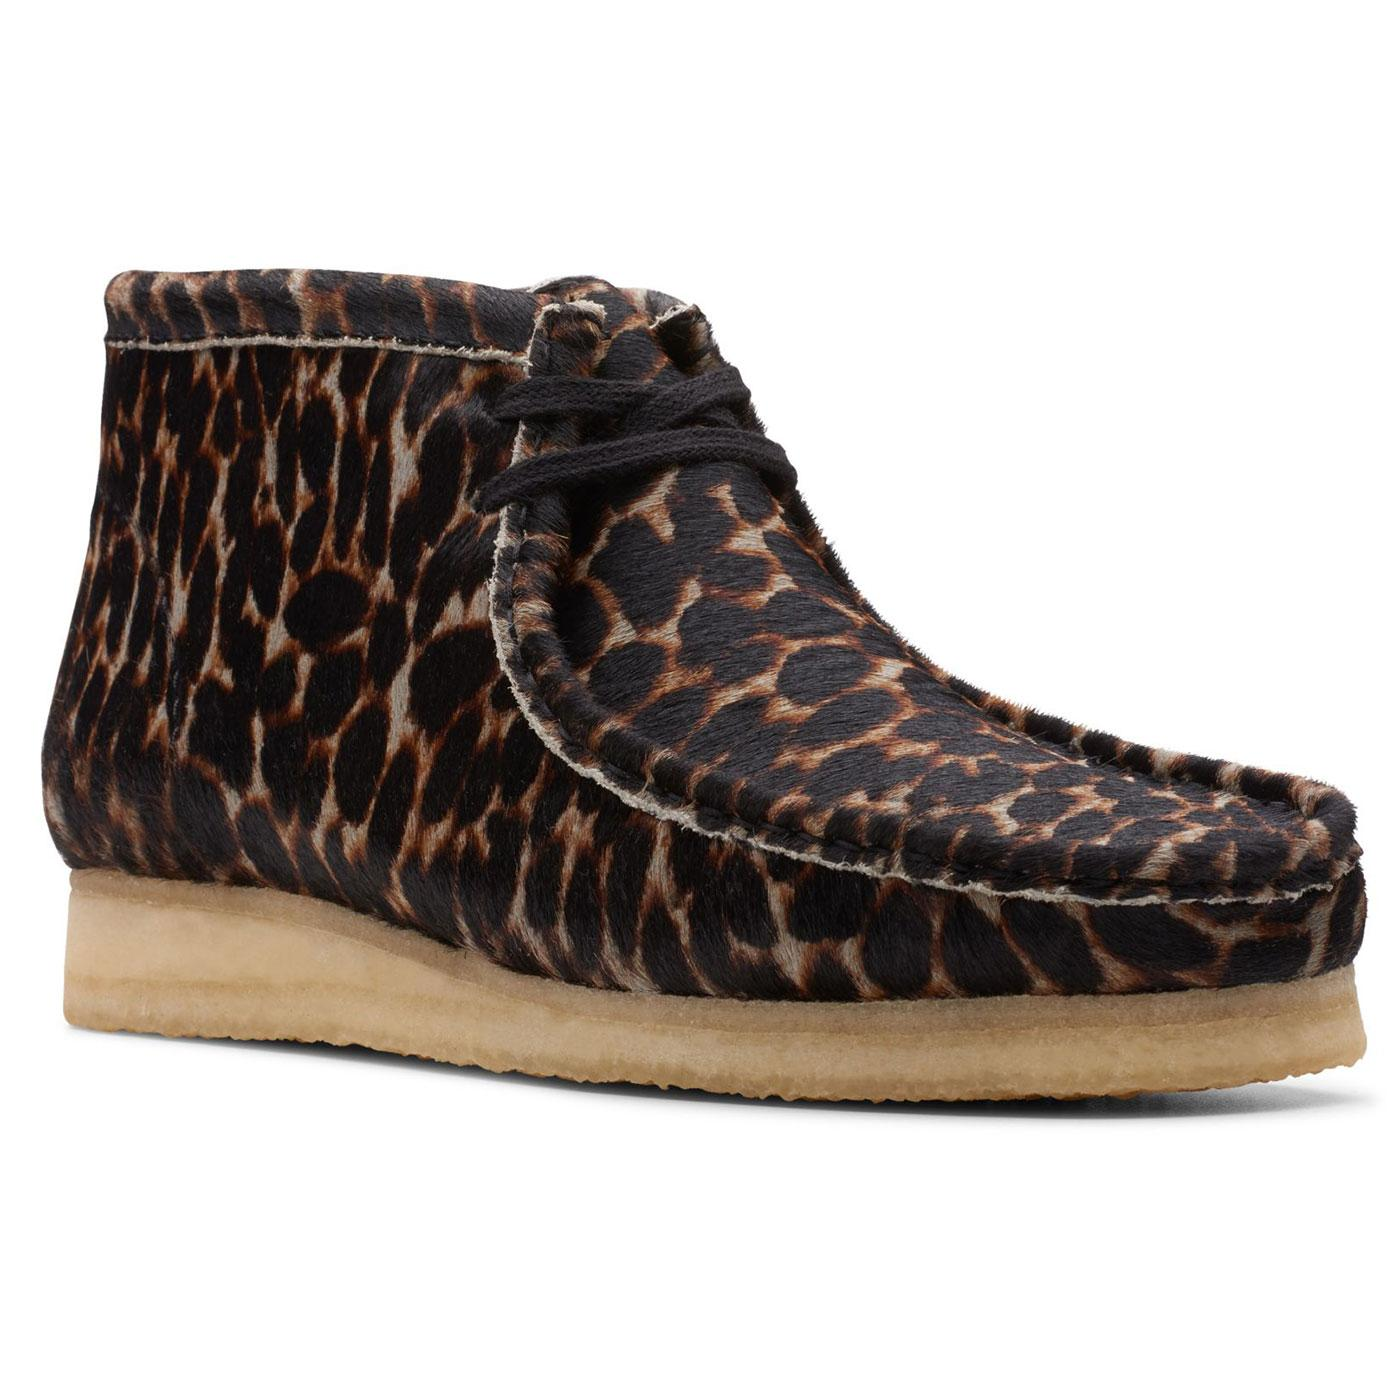 Wallabee Boots CLARKS ORIGINALS Animal Print Shoes